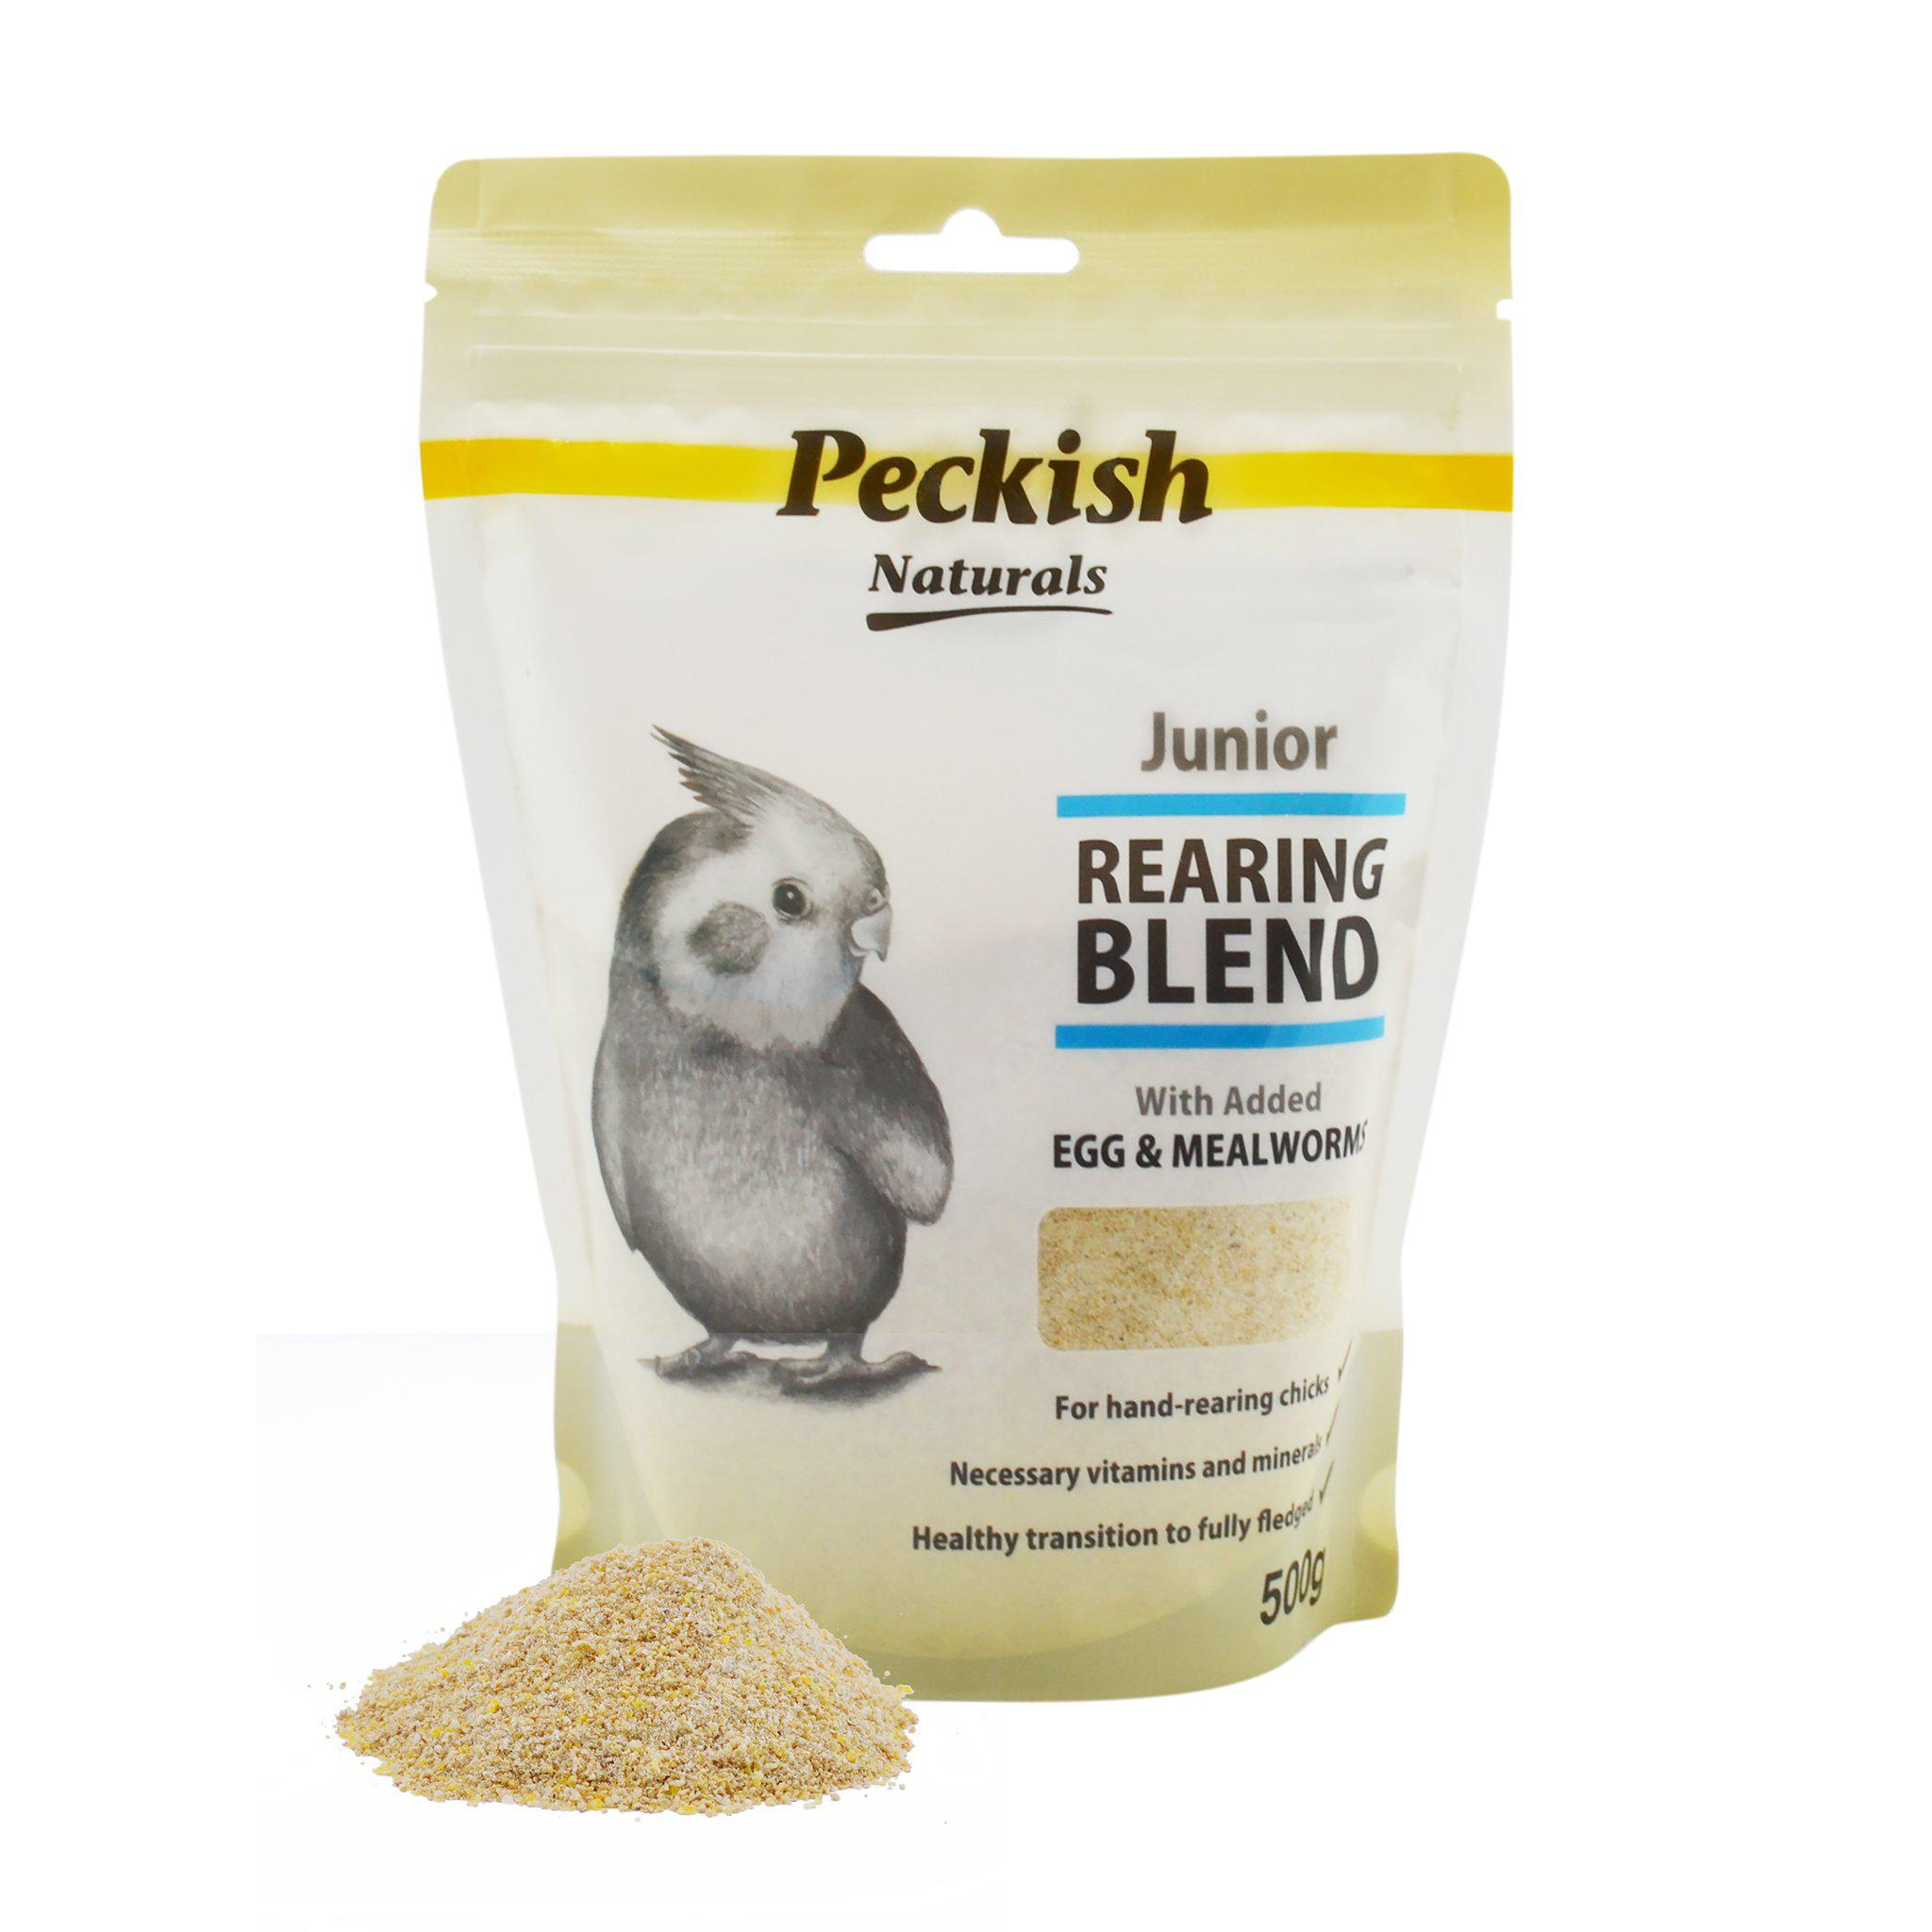 Peckish Naturals Junior Rearing Blend - Egg & Mealworm - comfypet